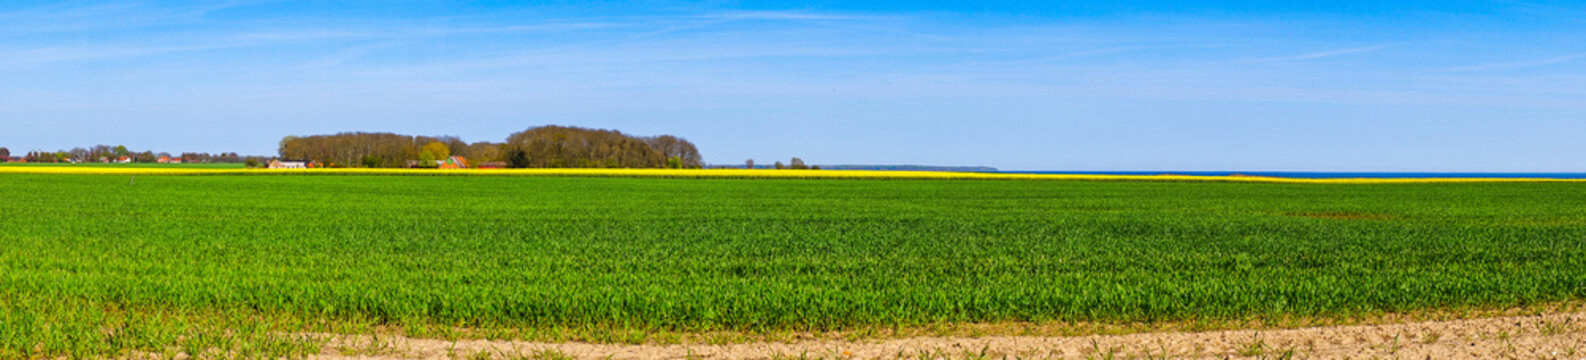 Panorama landscape with a canola field